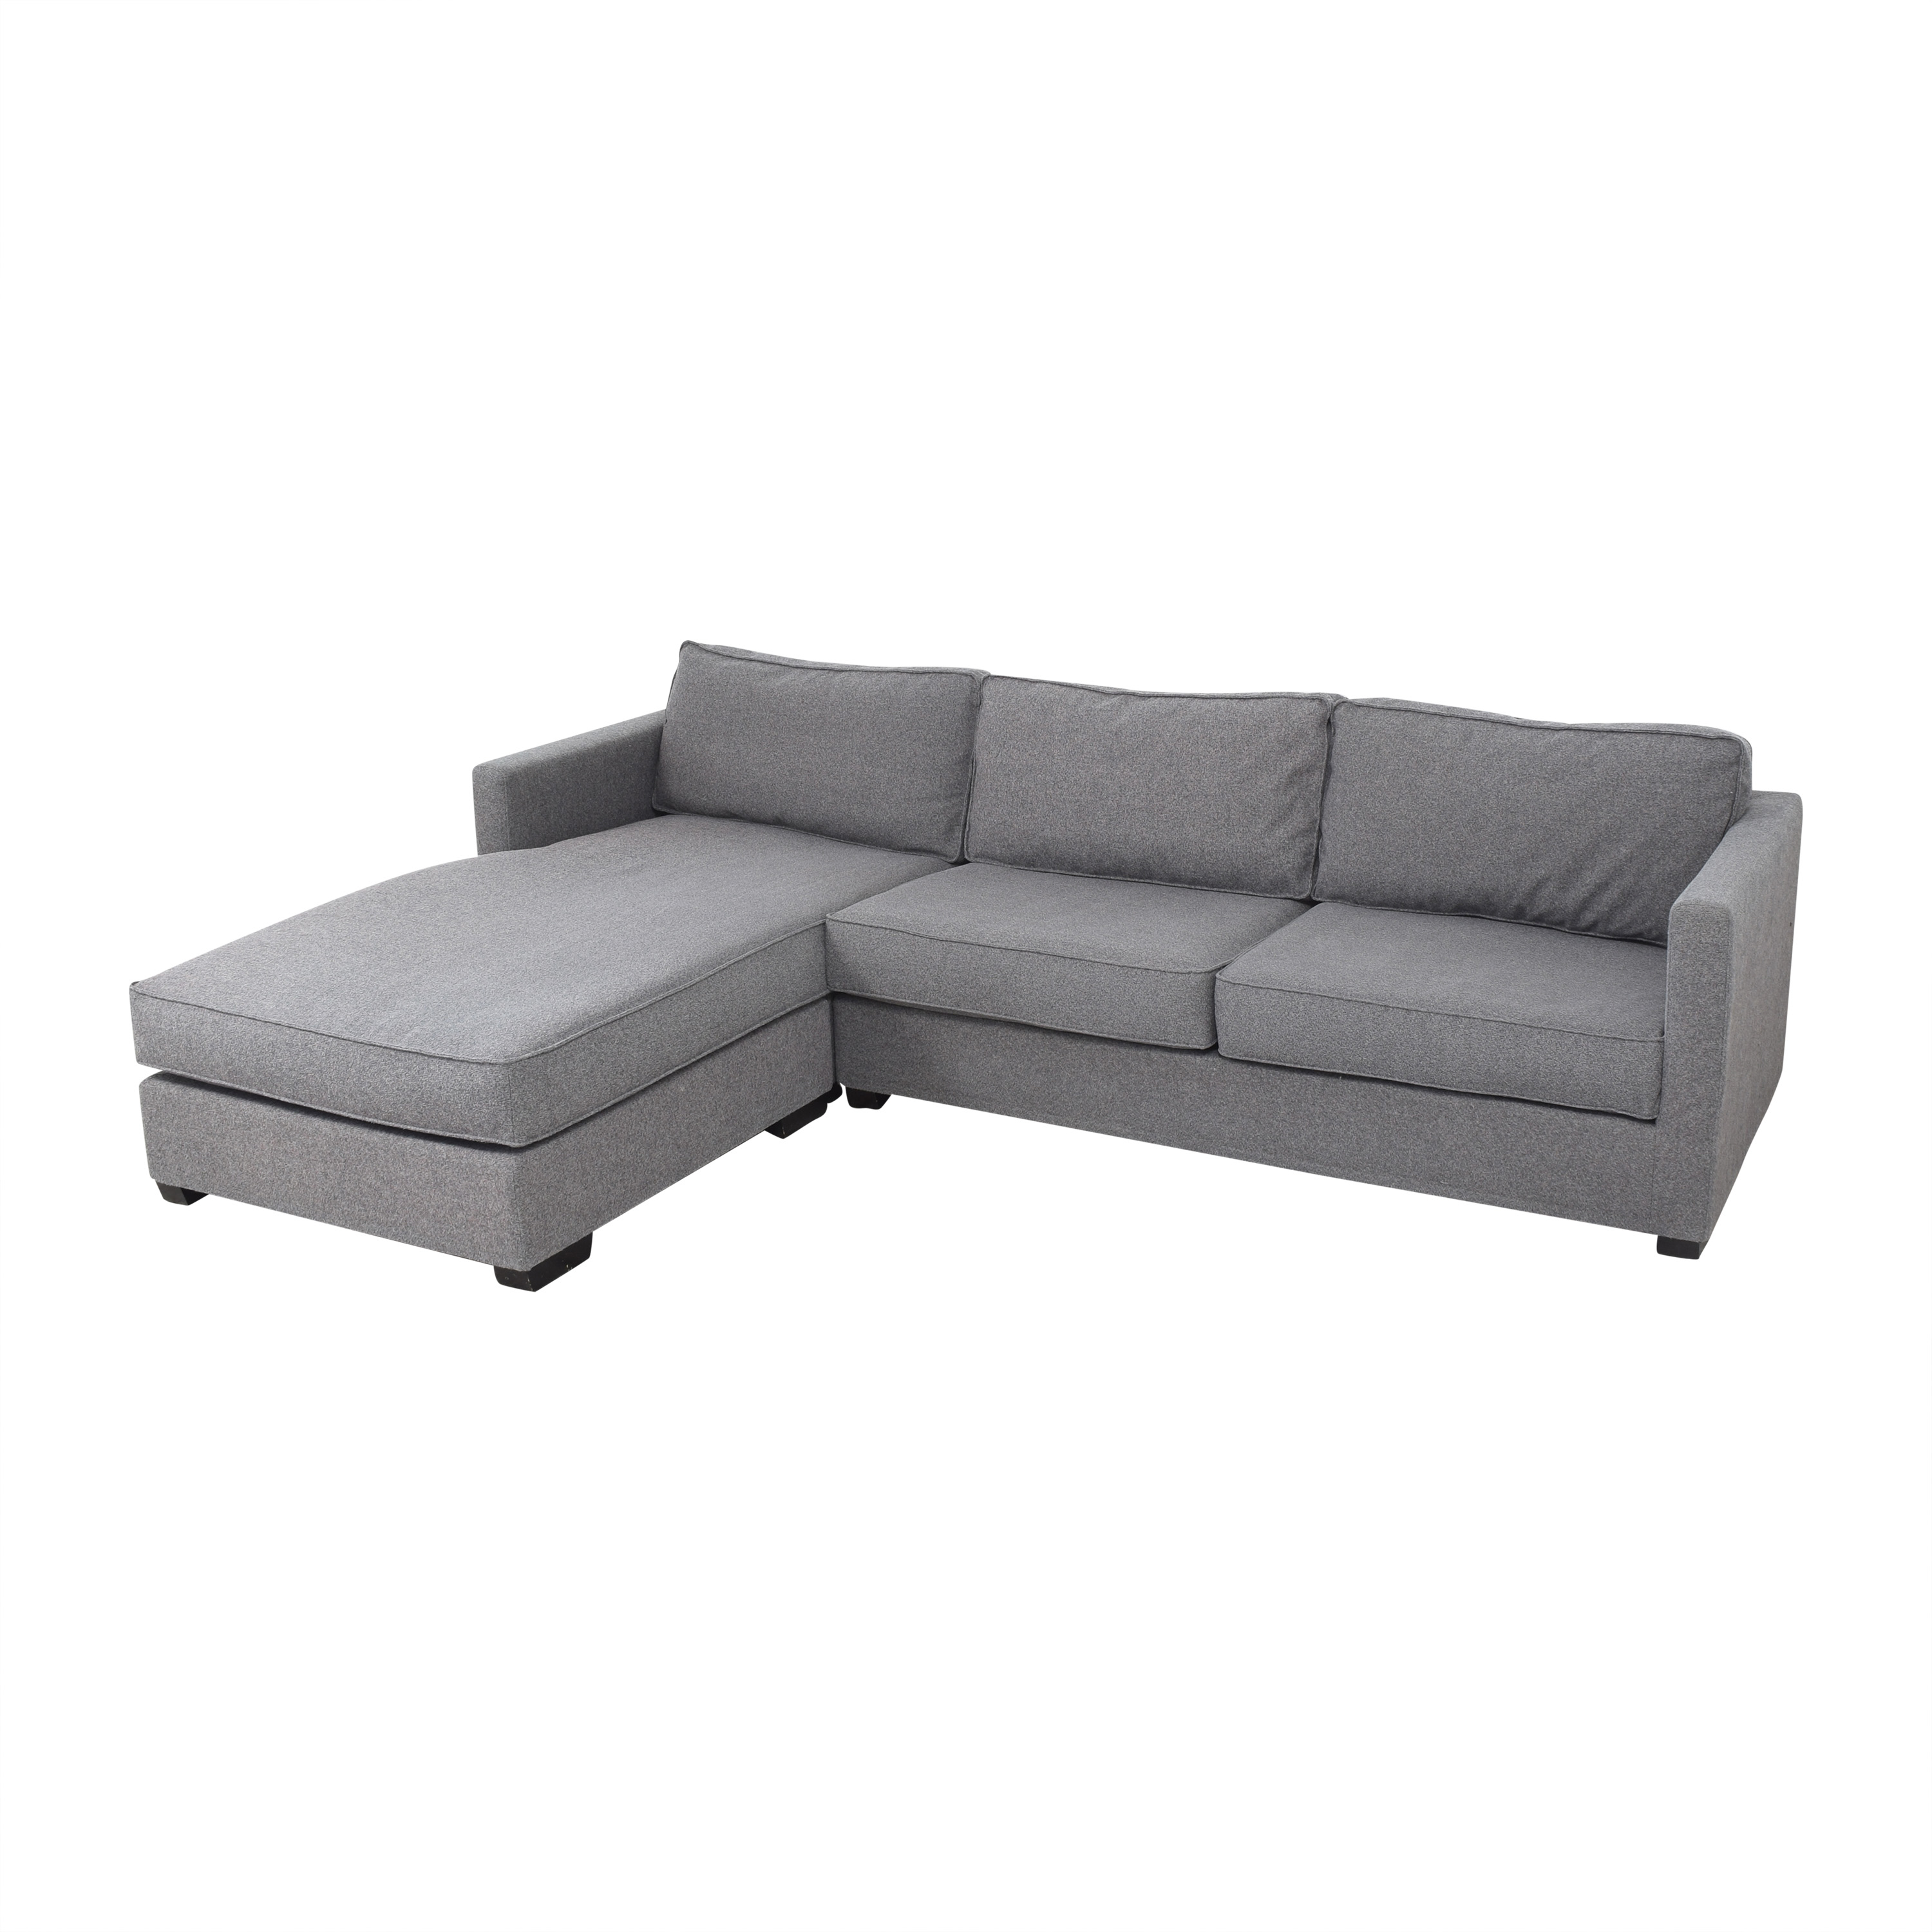 A & G Merch Two Piece Sectional Sofa with Chaise sale